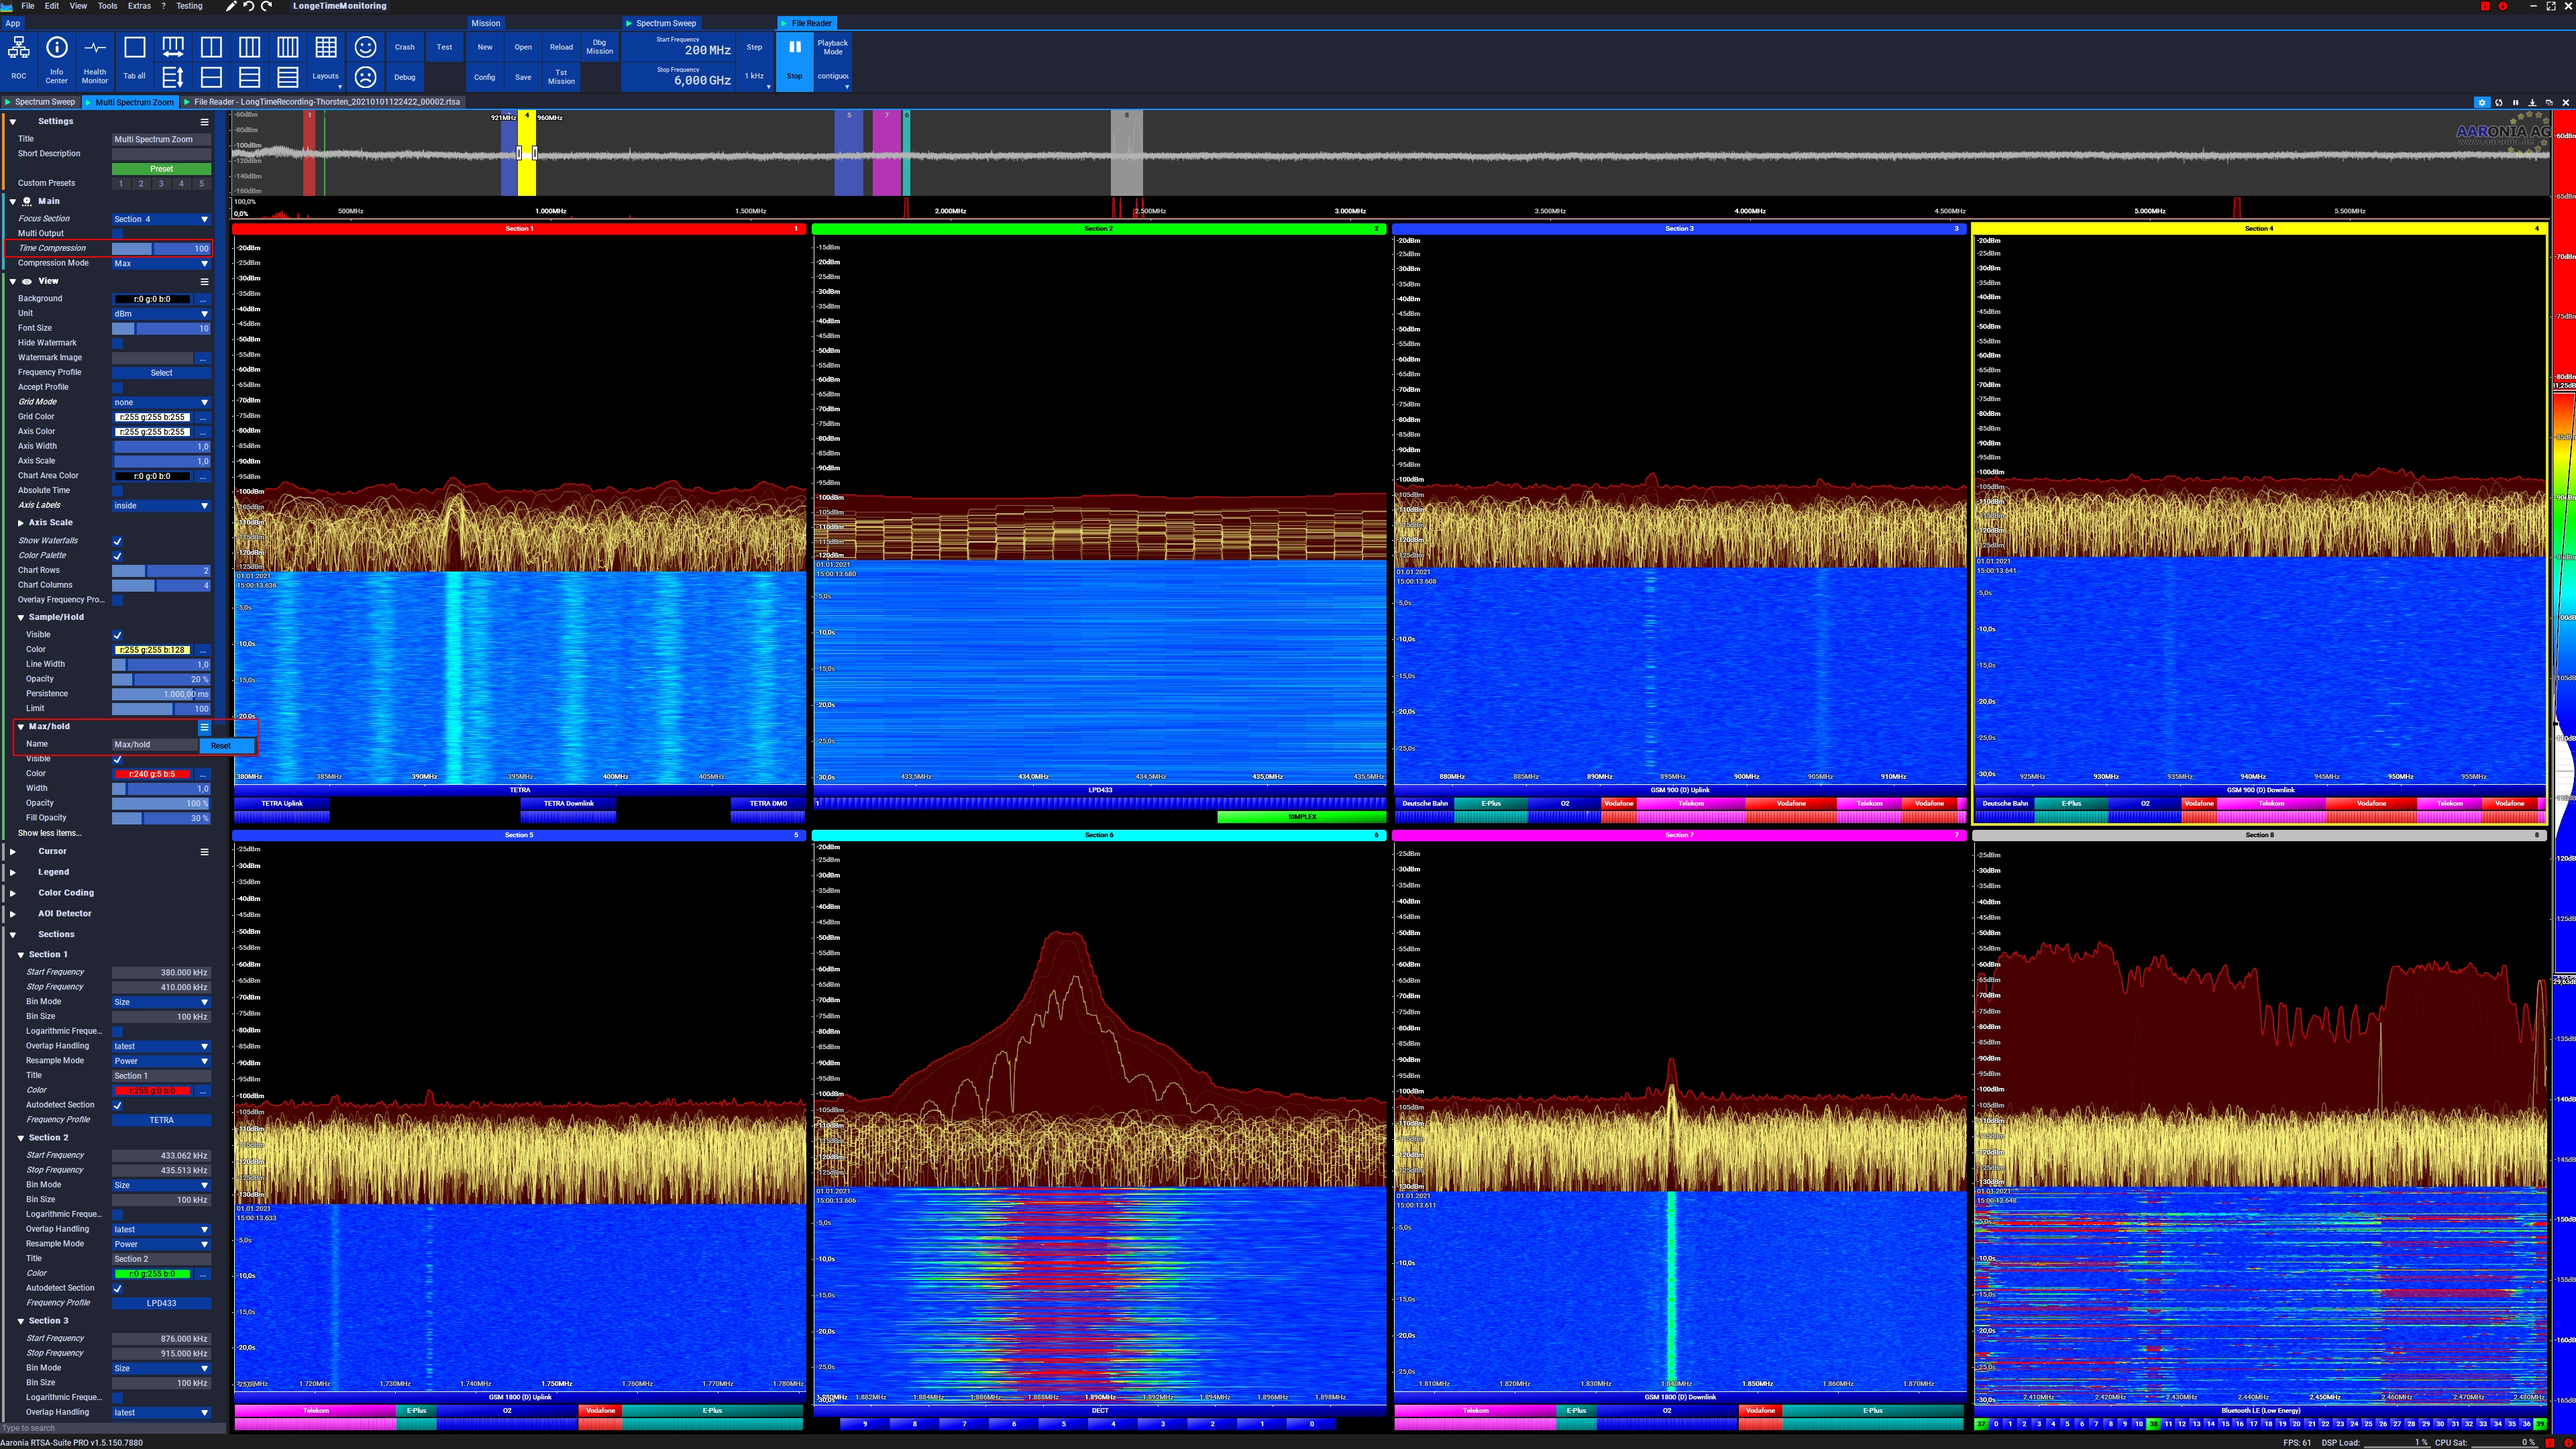 Wide band monitoring with the help of the Multi Spectrum Zoom